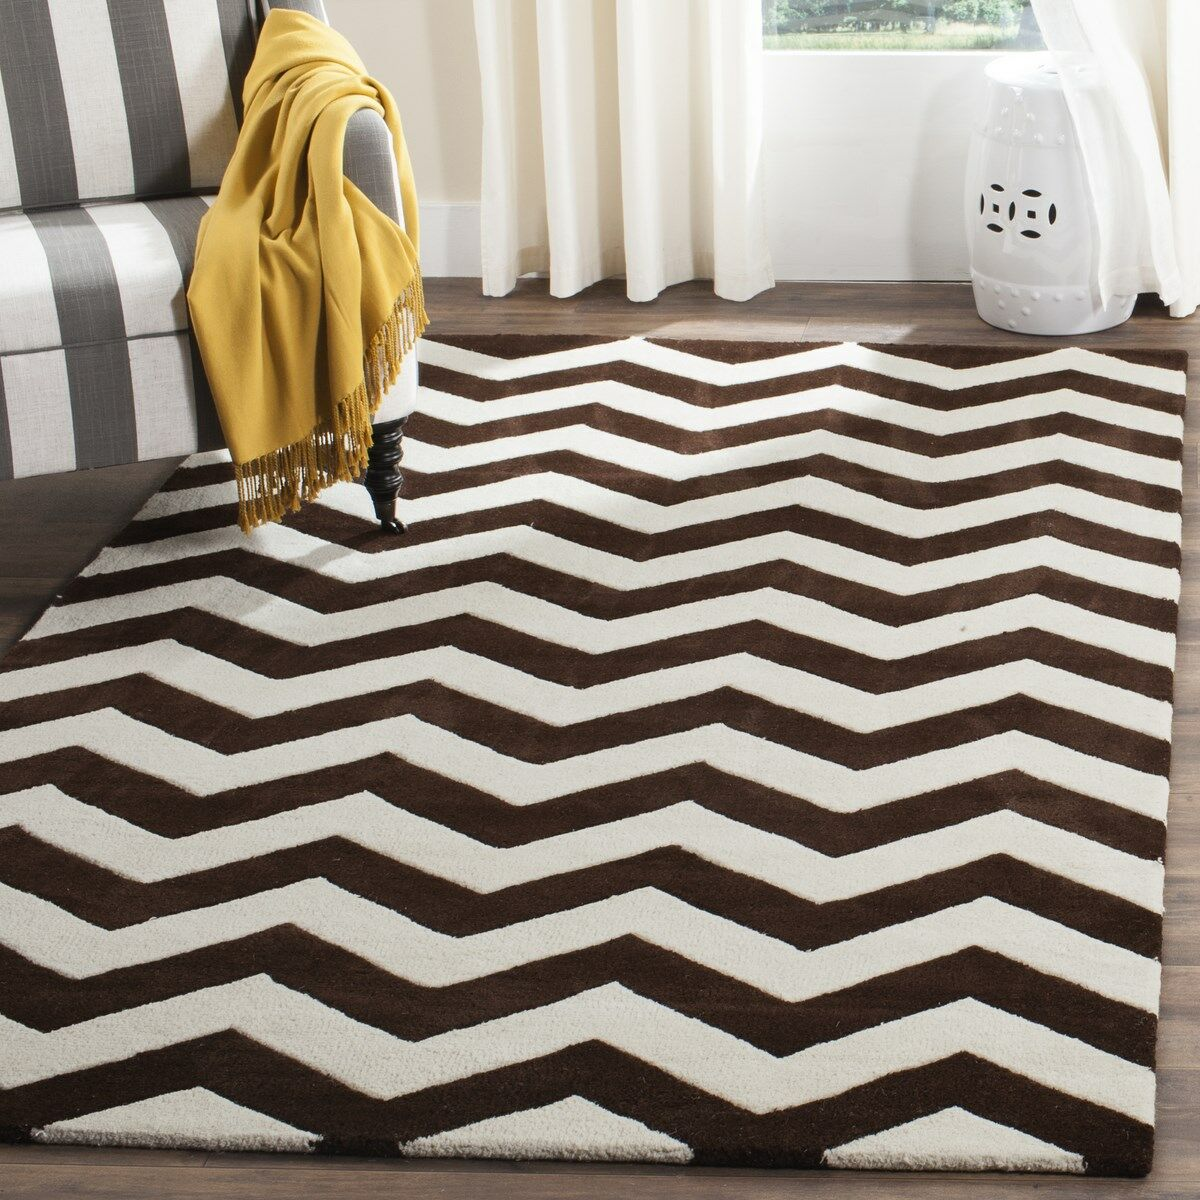 Wilkin Wool Brown/Ivory Area Rug Rug Size: Rectangle 4' x 6'